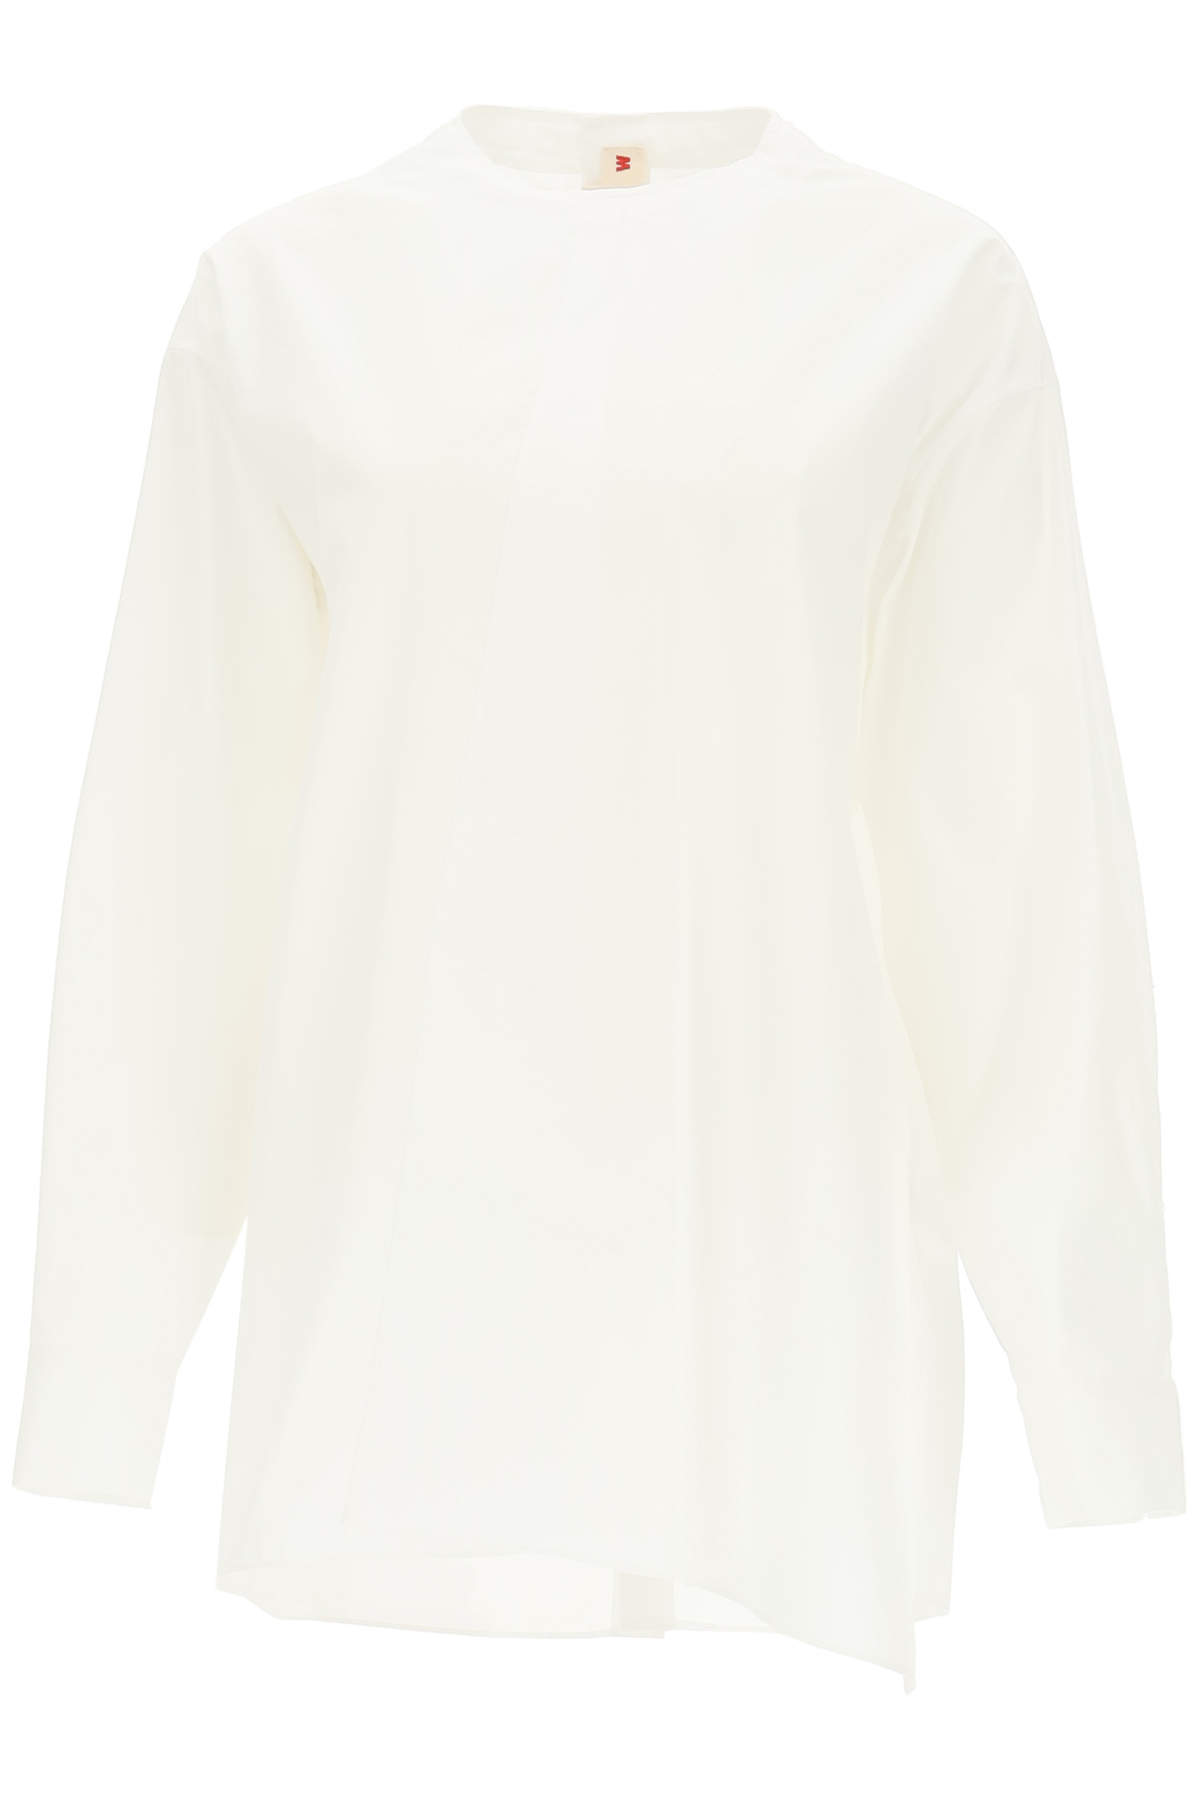 Marni ASYMMETRIC COTTON SHIRT